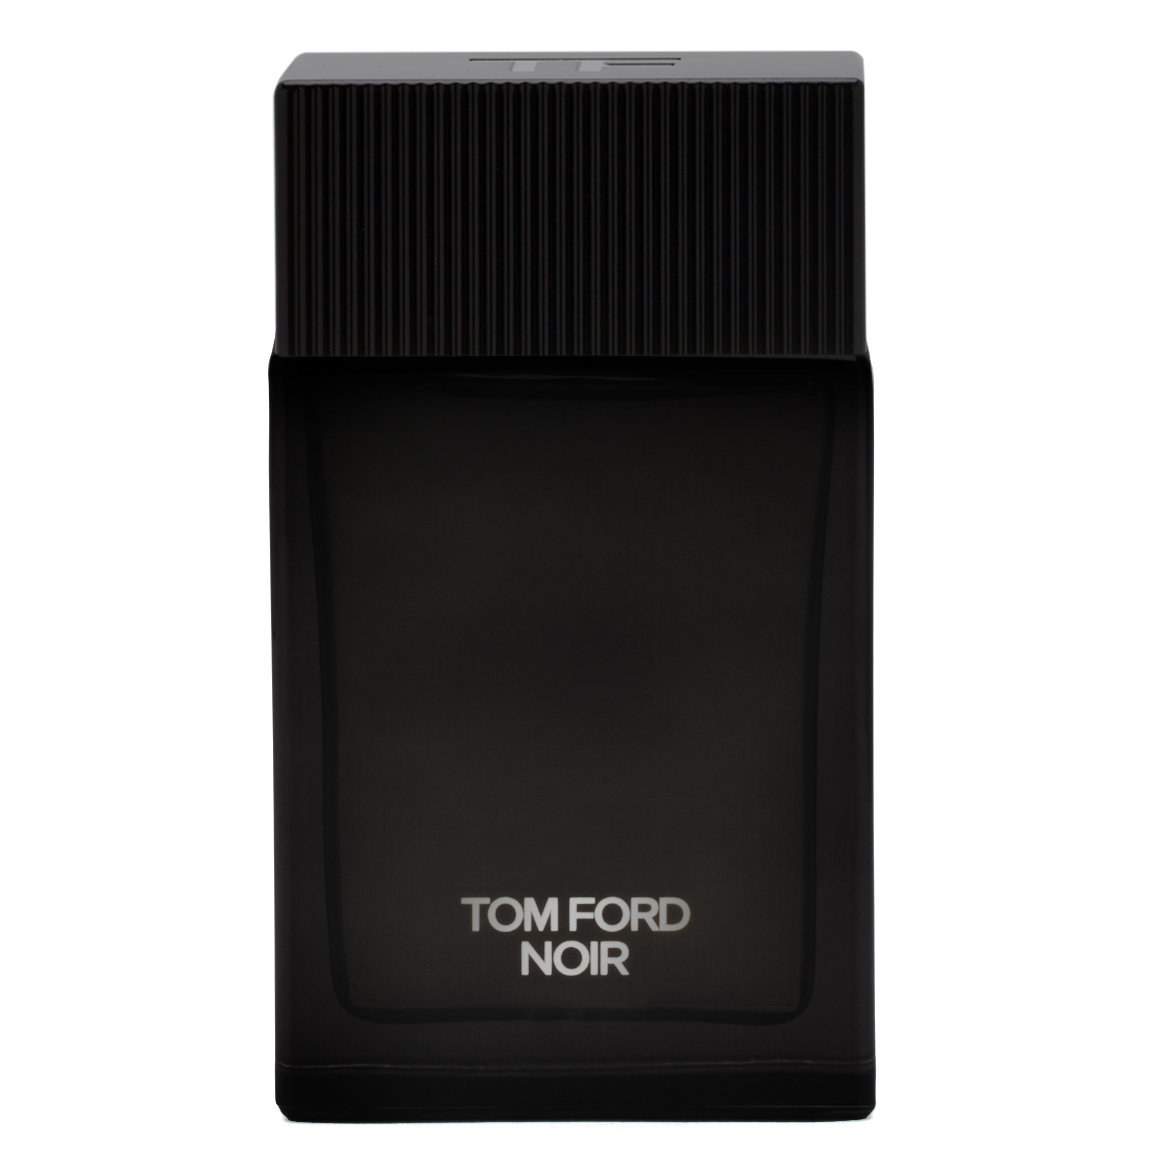 TOM FORD Tom Ford Noir 100 ml product swatch.